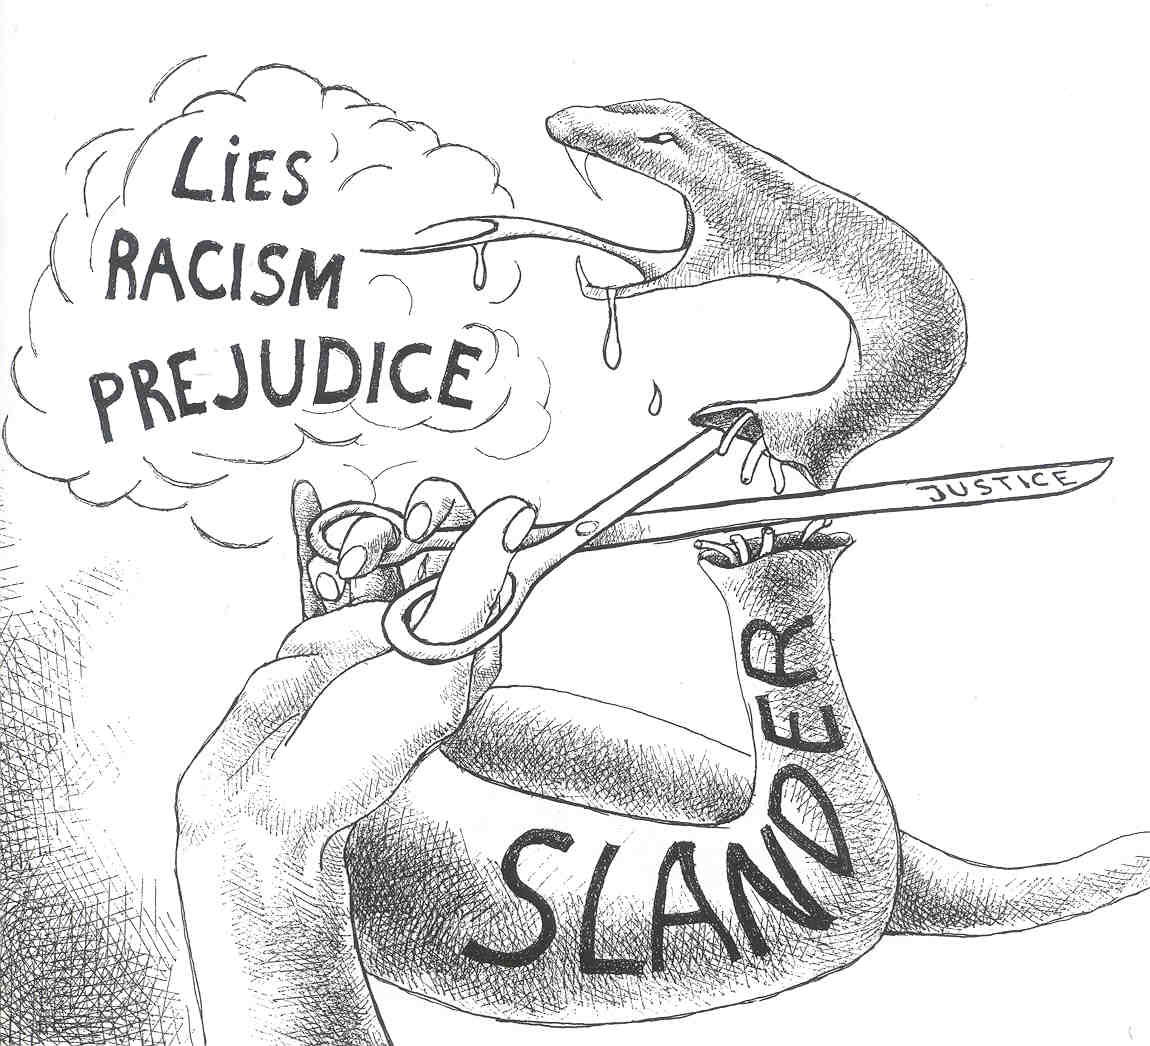 is the holocaust an example of racism